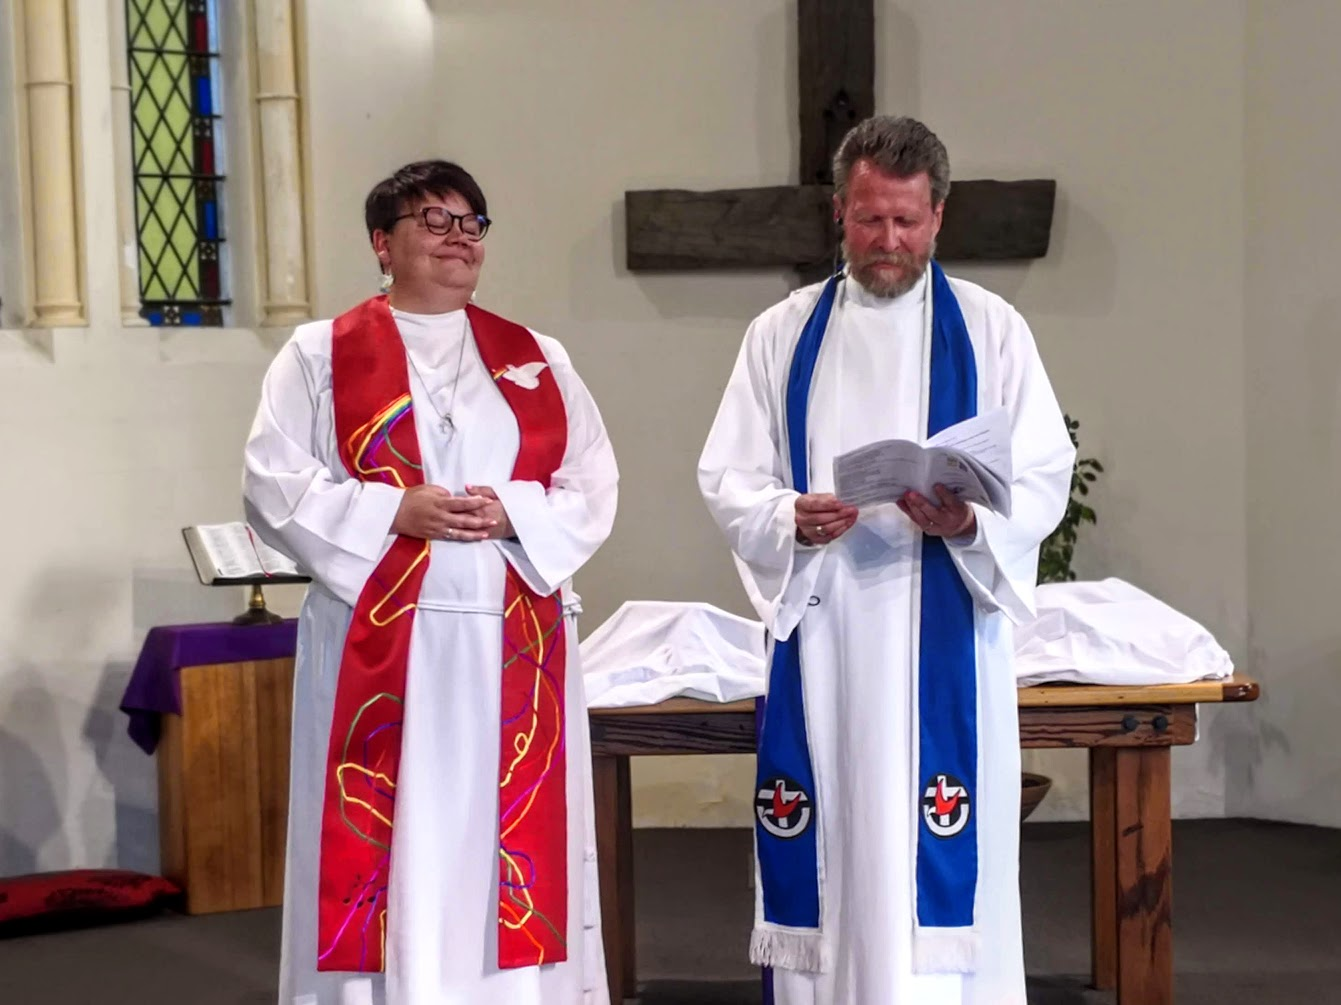 Carlynne standing in her alb and stole with another minister during her ordination ceremony